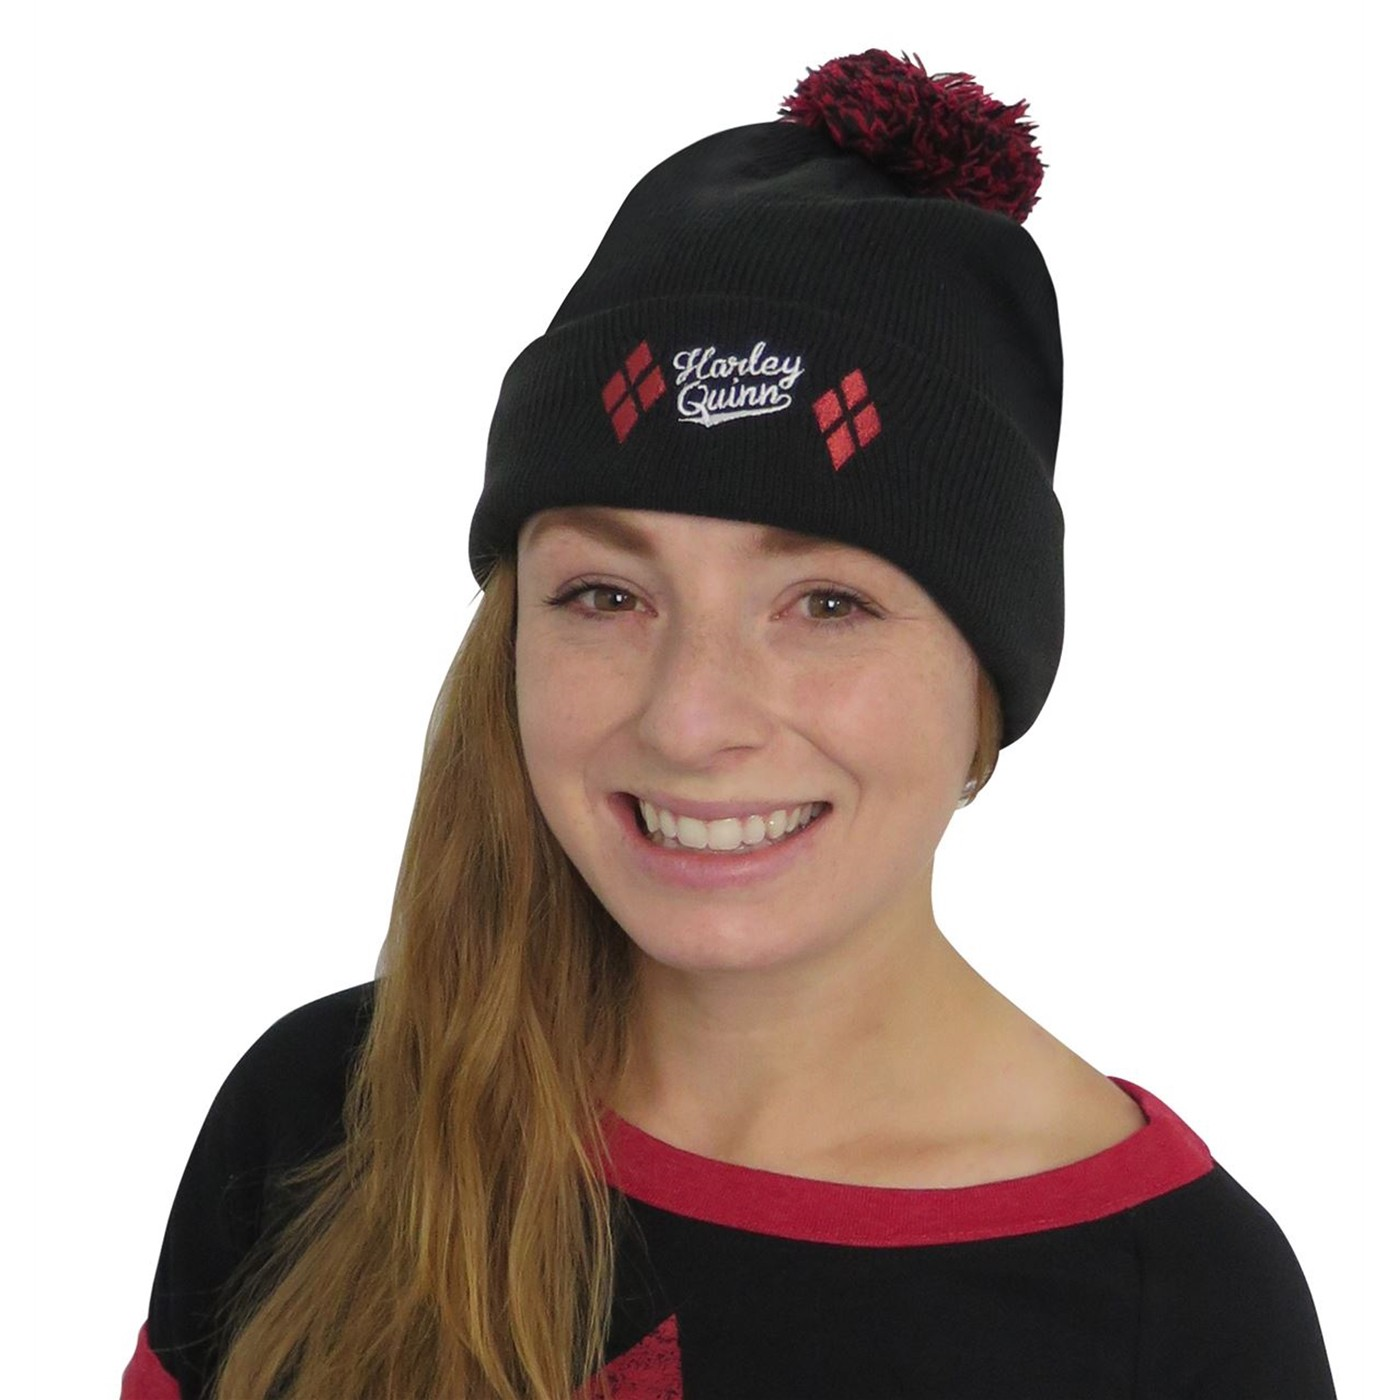 Harley Quinn Athletic Women's Sweater with Beanie